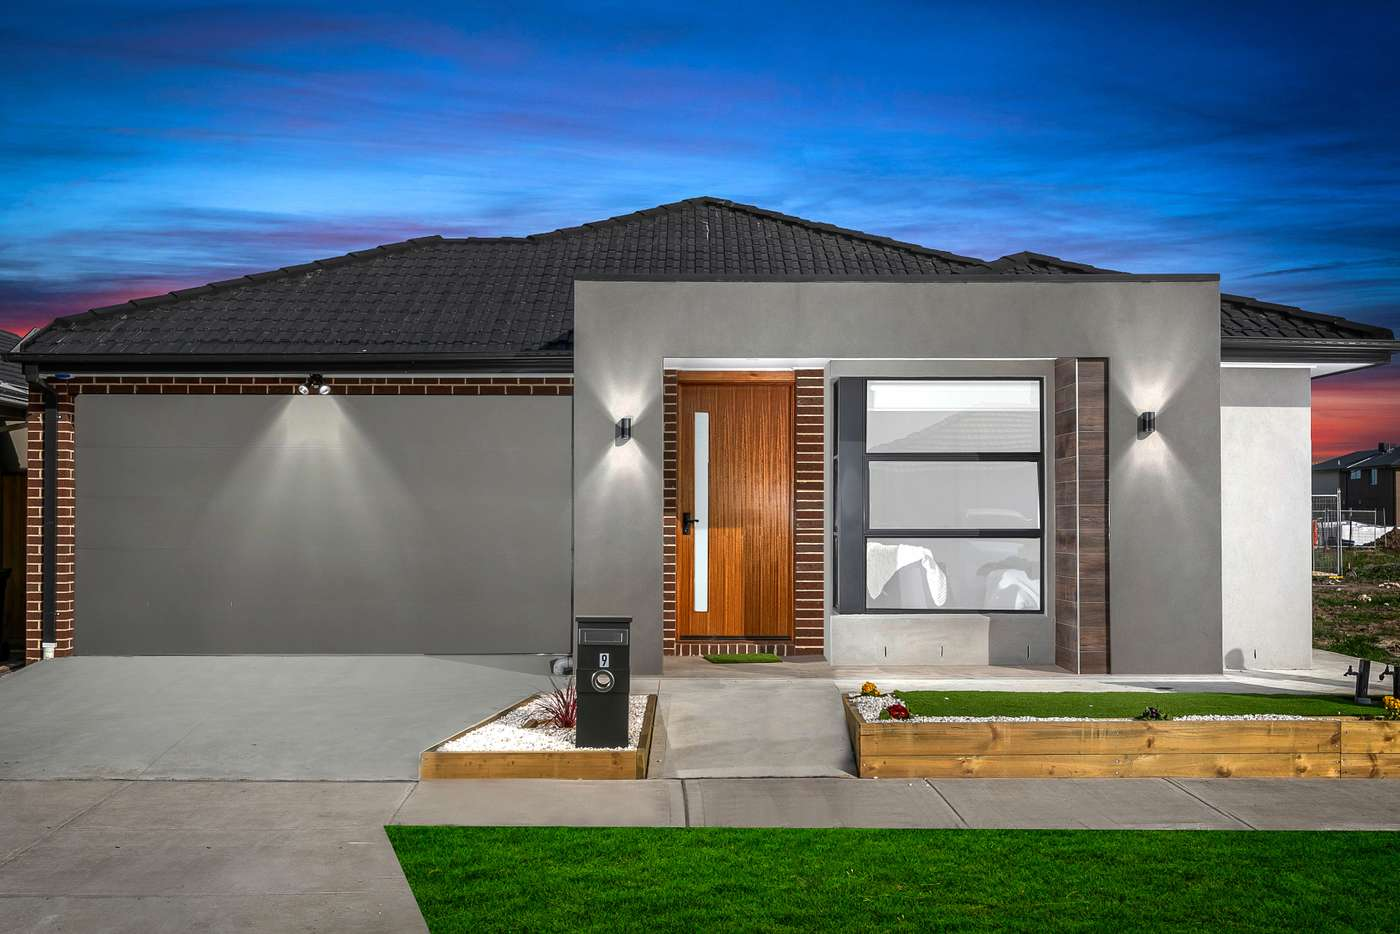 Main view of Homely house listing, 9 Hemsworth Street, Donnybrook VIC 3064